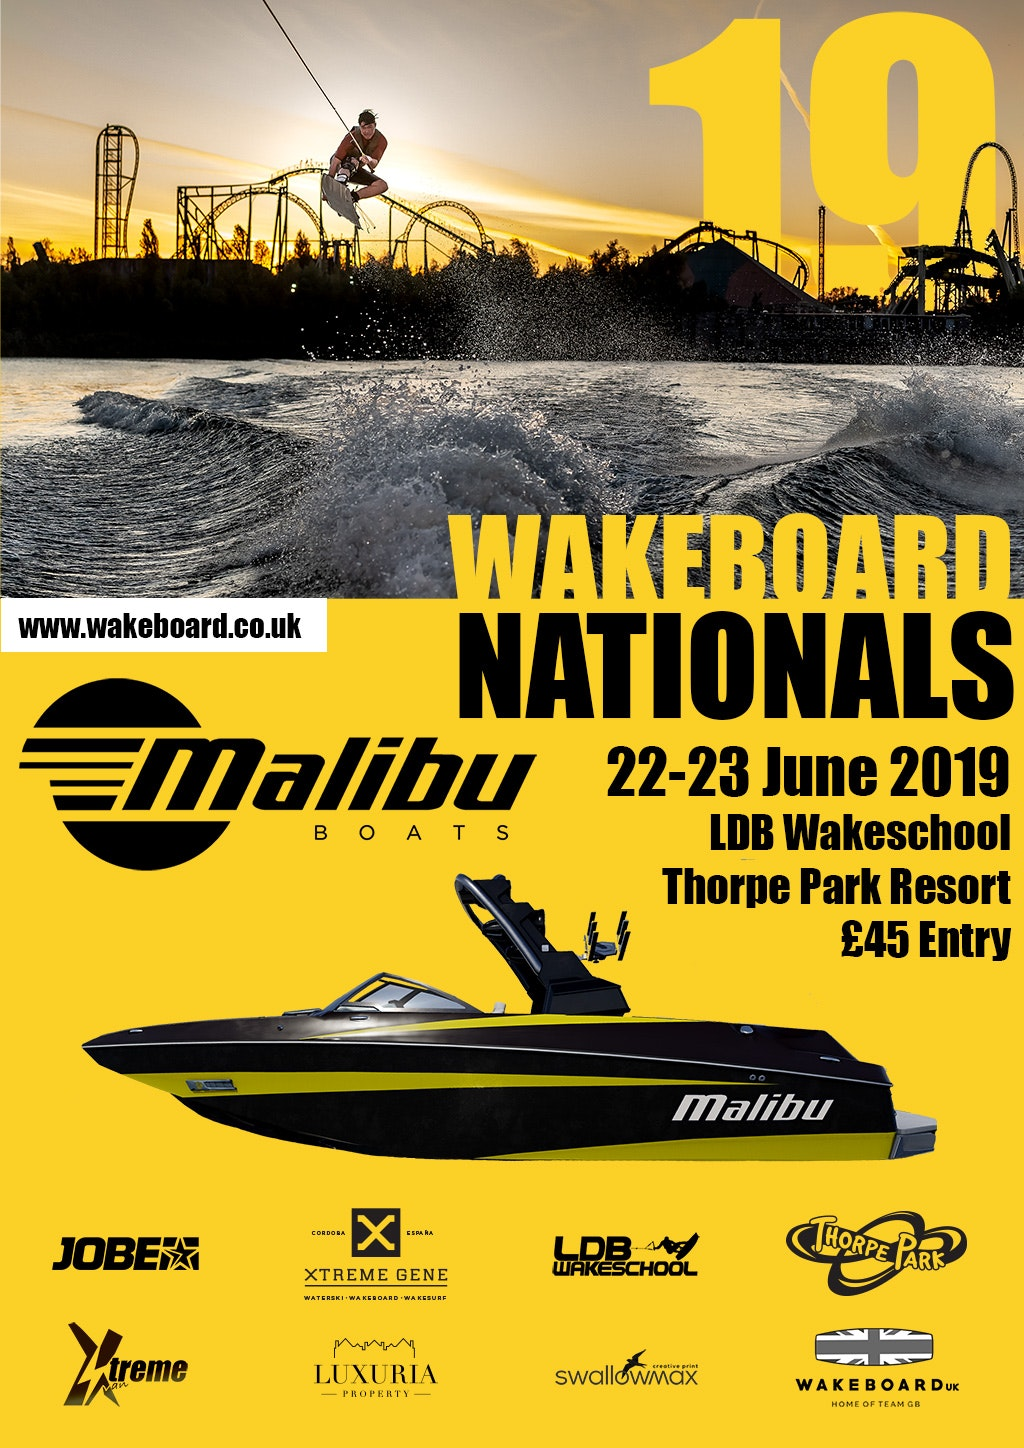 2019 Malibu Boats UK Wakeboard Nationals